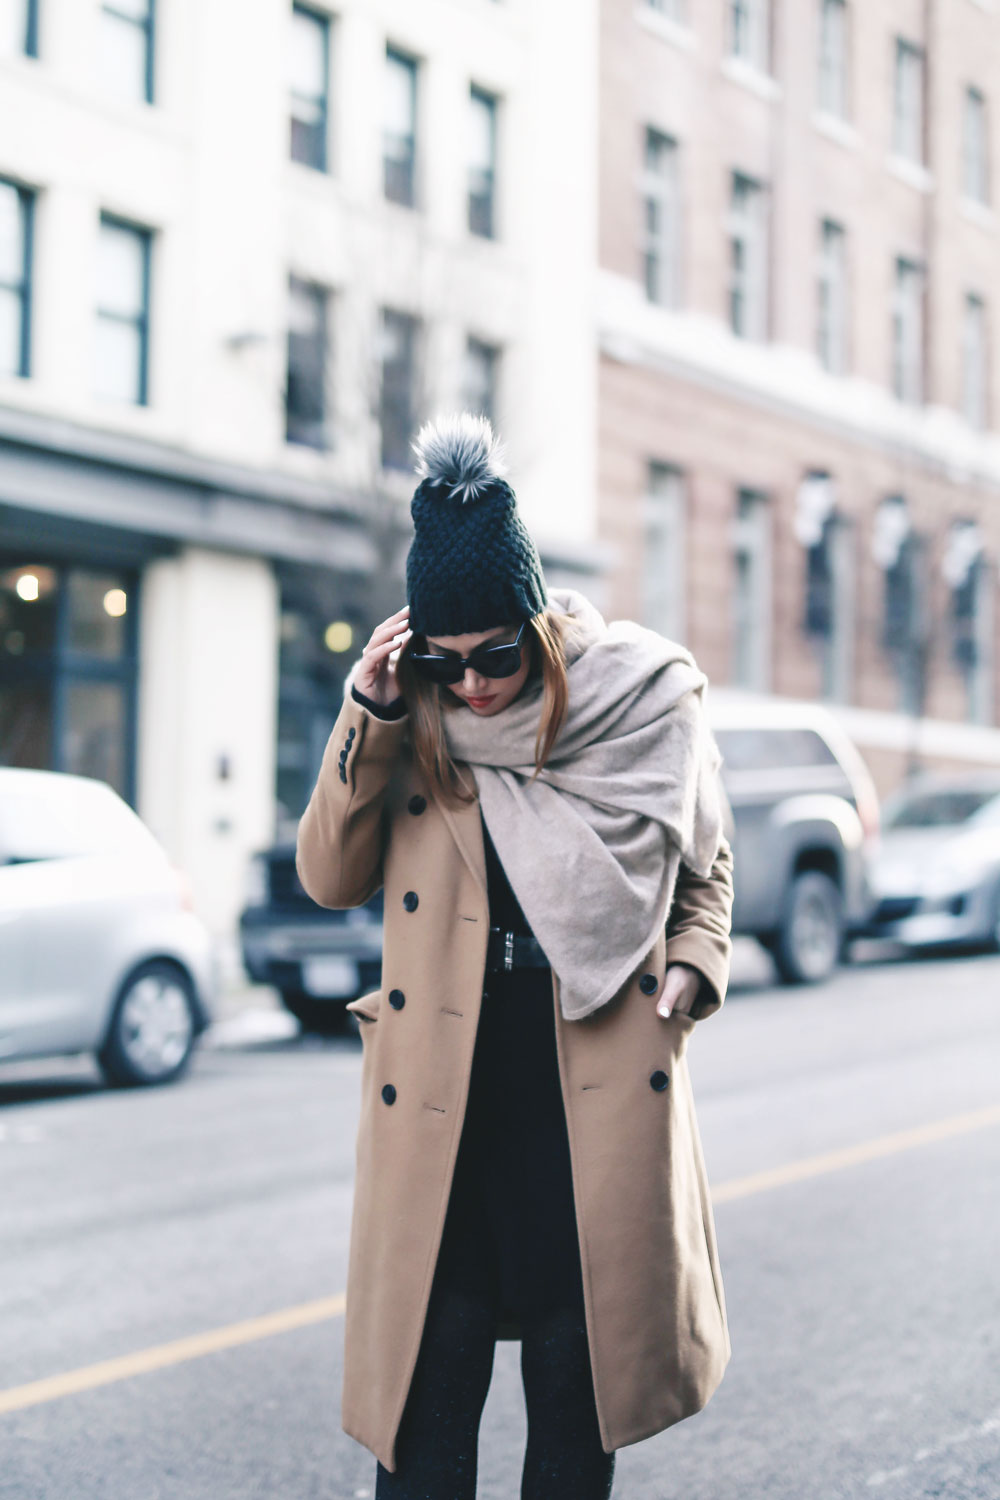 Tips on wearing a dress in the winter styled by To Vogue or Bust in an Aritzia camel wool coat, White and Warren cashmere dress, White and Warren cashmere travel wrap, Frye ankle boots, Express beanie hat and Celine Caty sunglasses